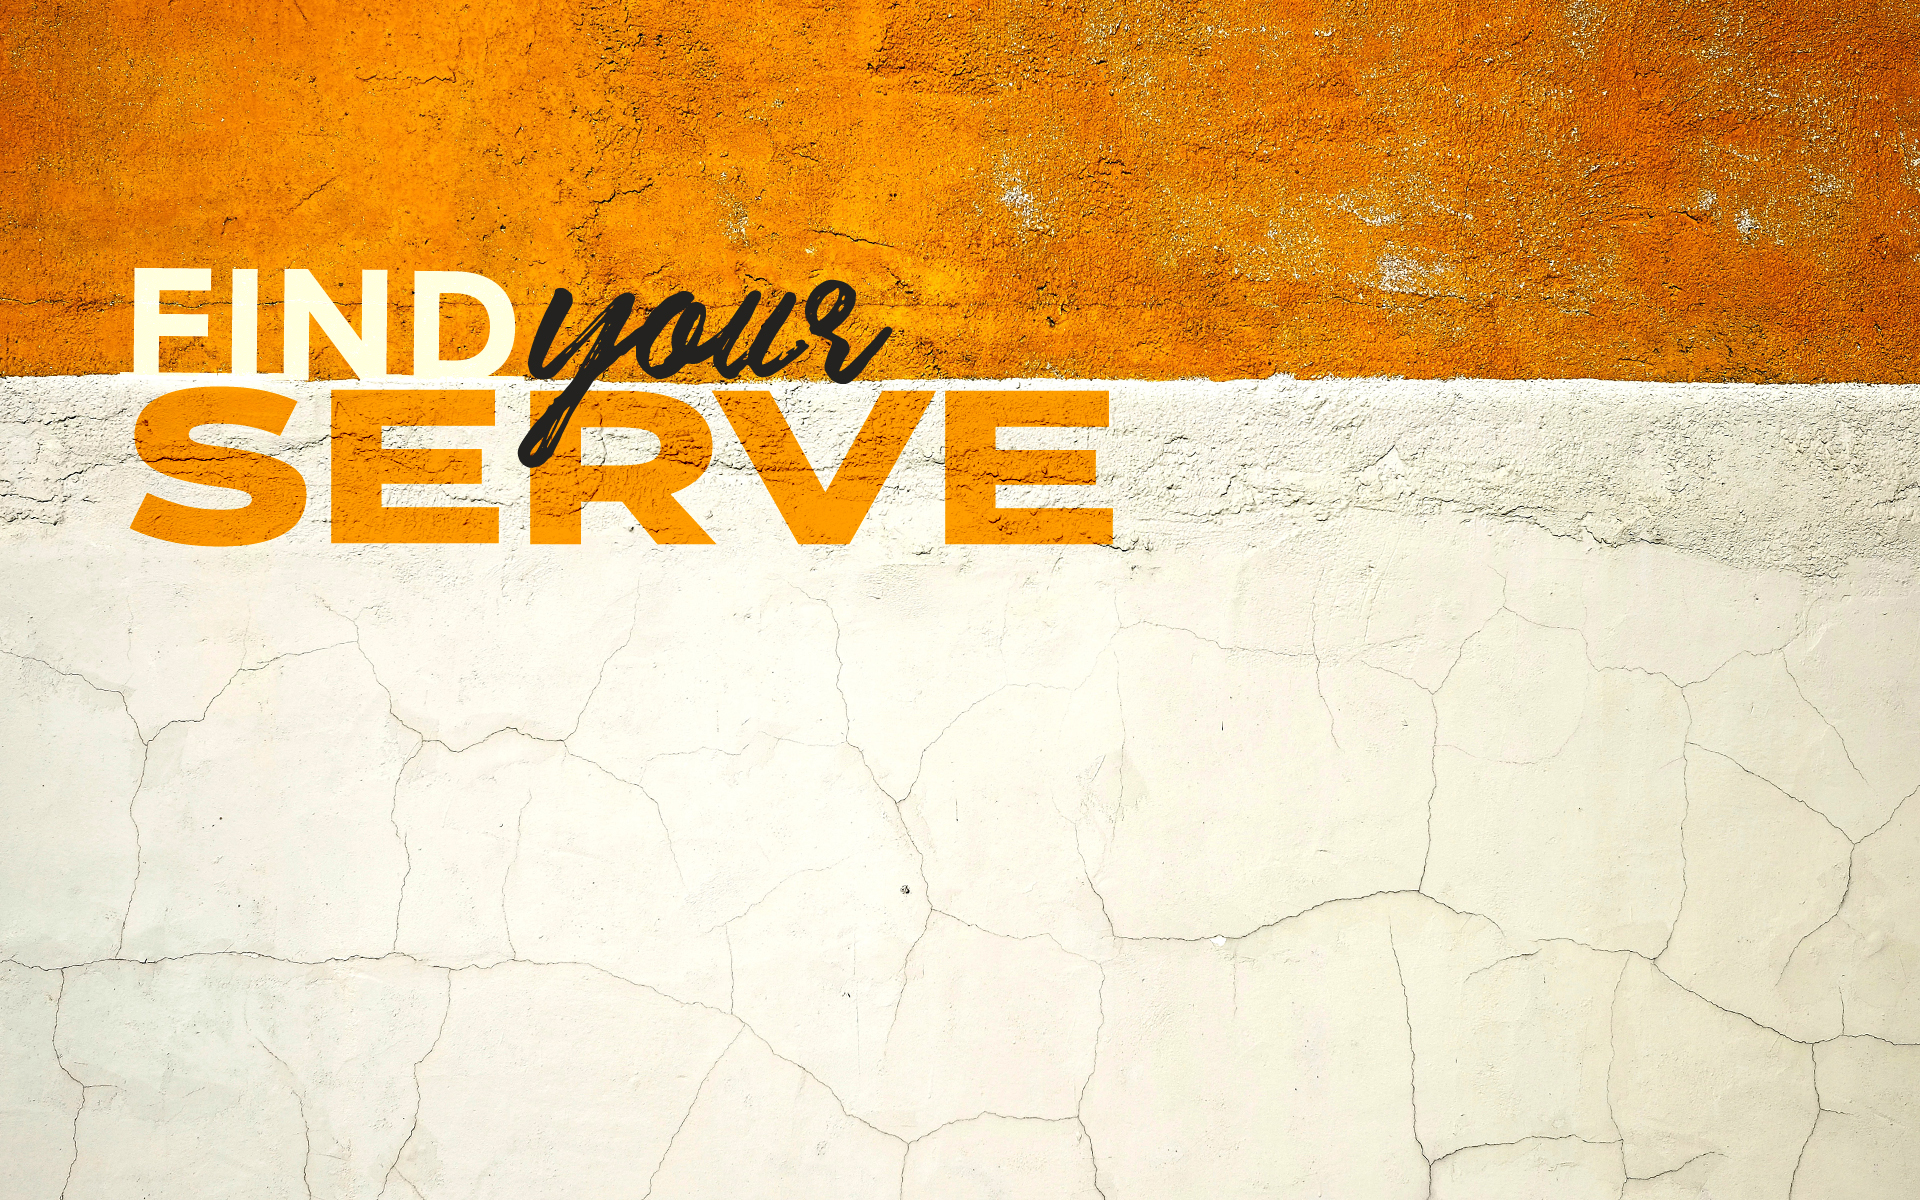 Serve is Spelled Engage